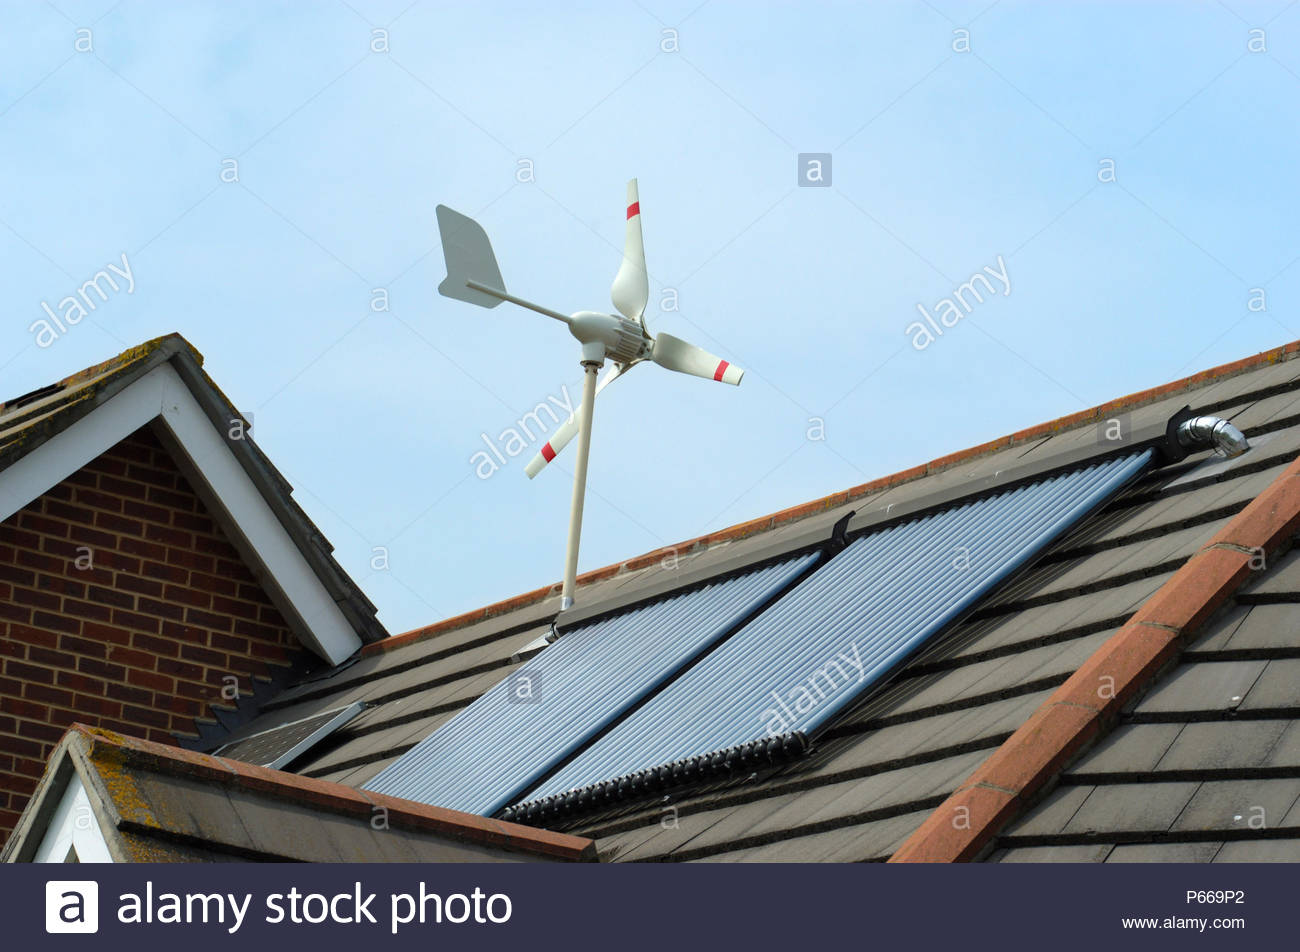 Micro Wind Turbine, Solar Voltaic and Evacuated solar tubes on roof of house in Ferndown Dorset England. - Stock Image